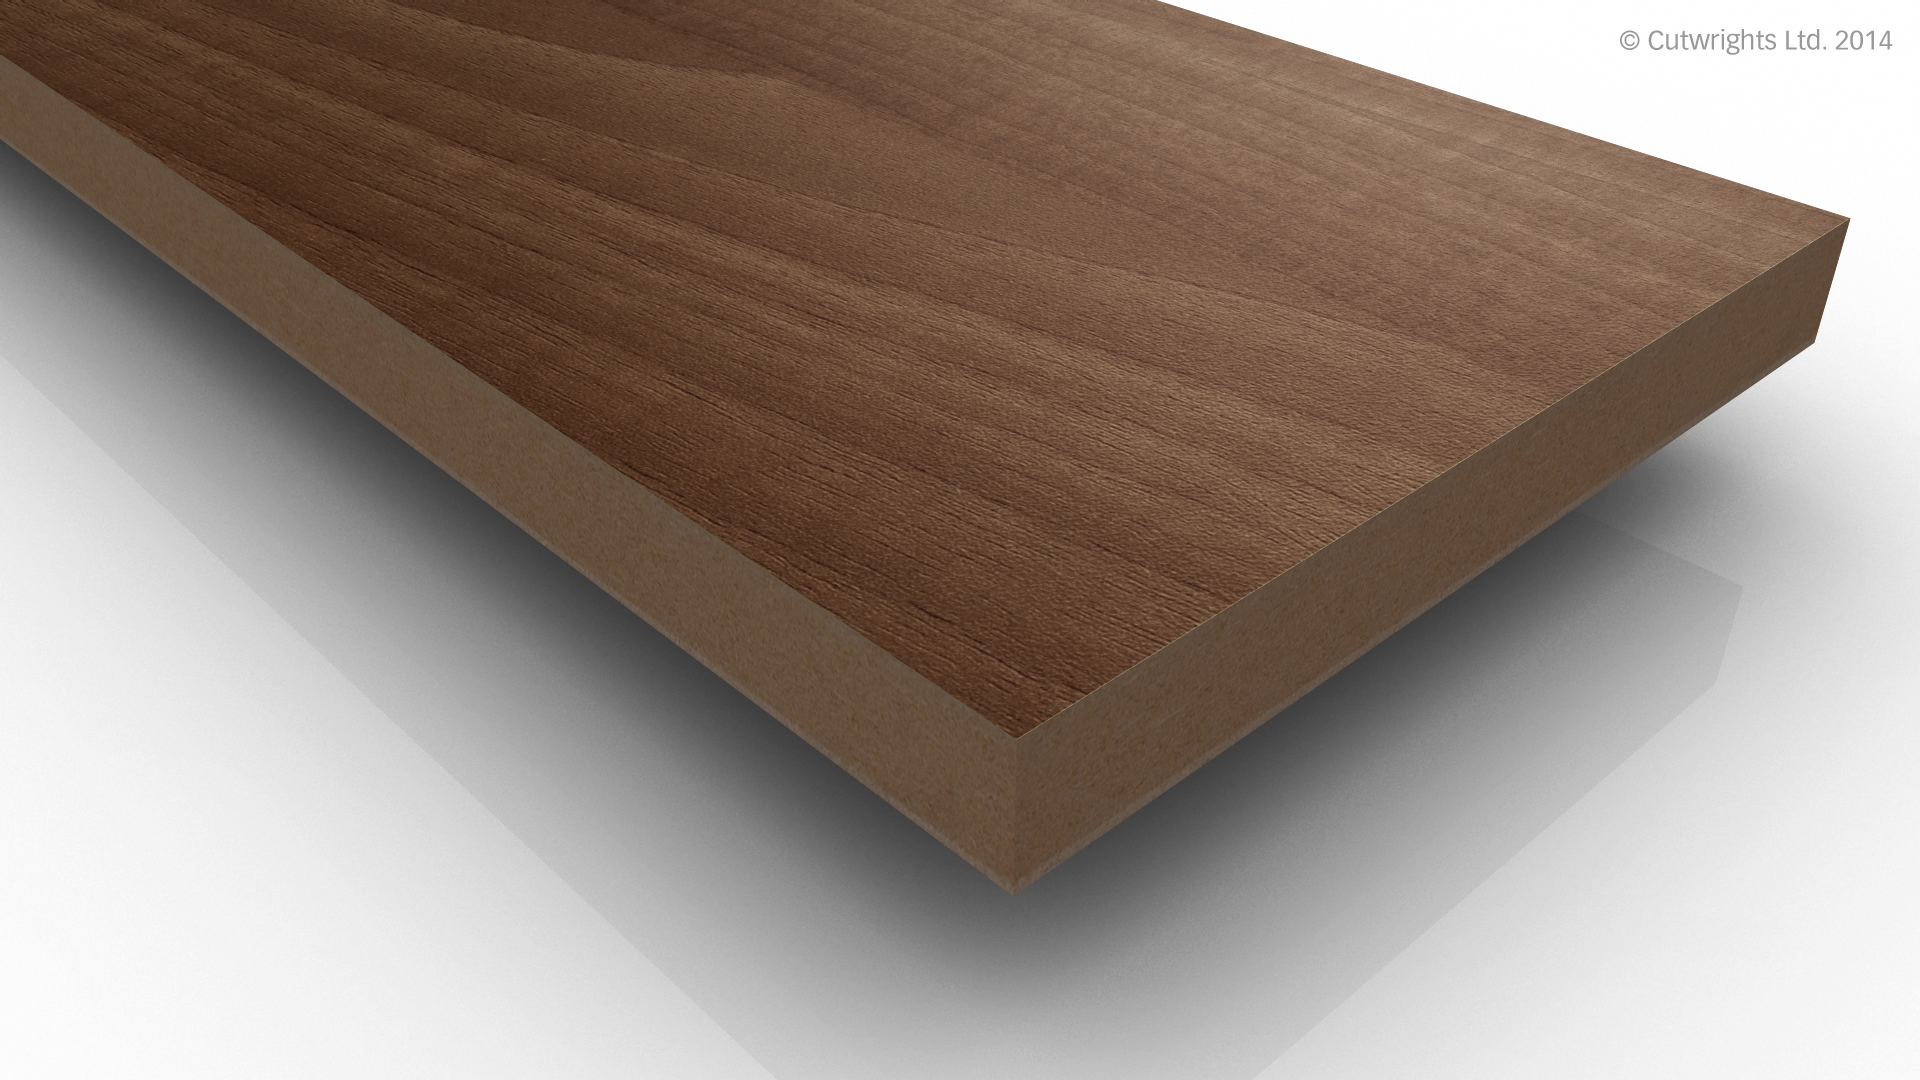 melamine faced mdf melamine faced mdf is a panel that has a mdf core  #624835 1920x1080